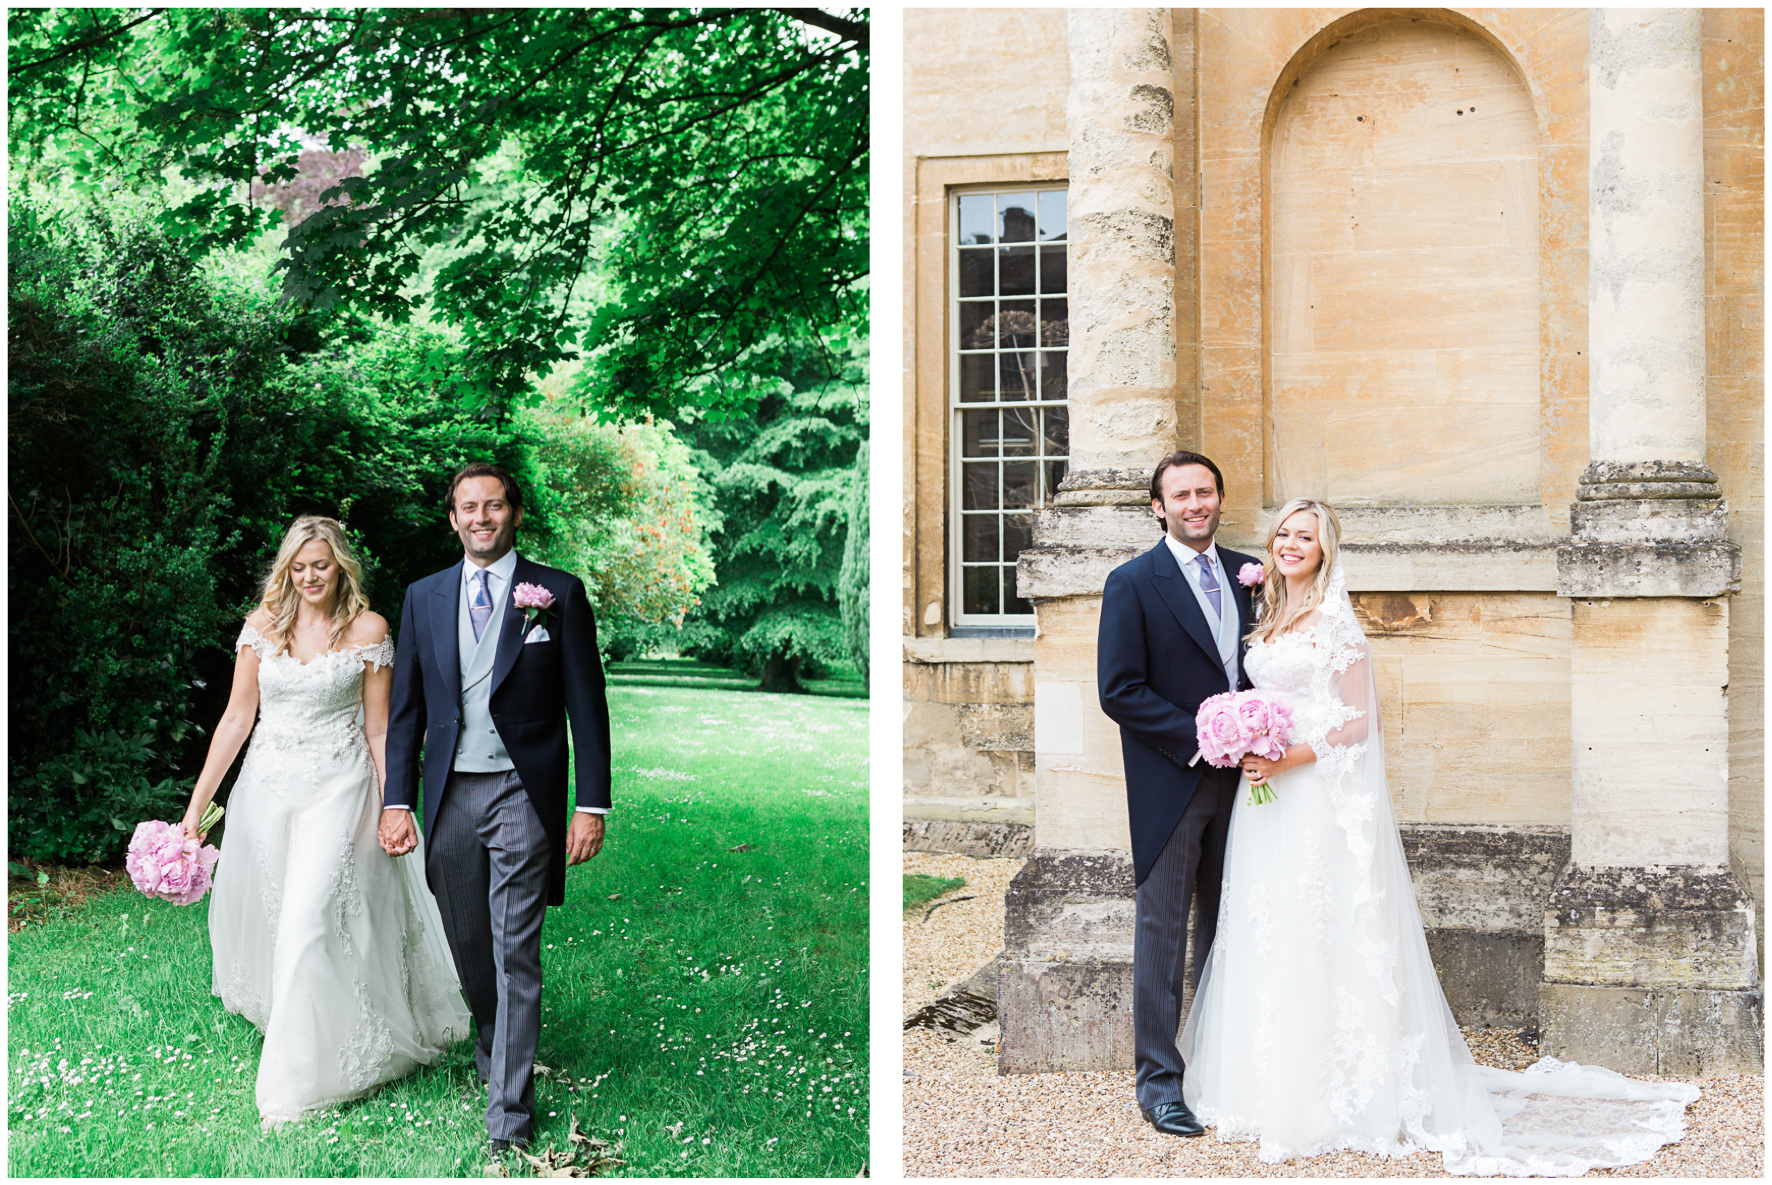 Aynhoe Park wedding, bridal couple